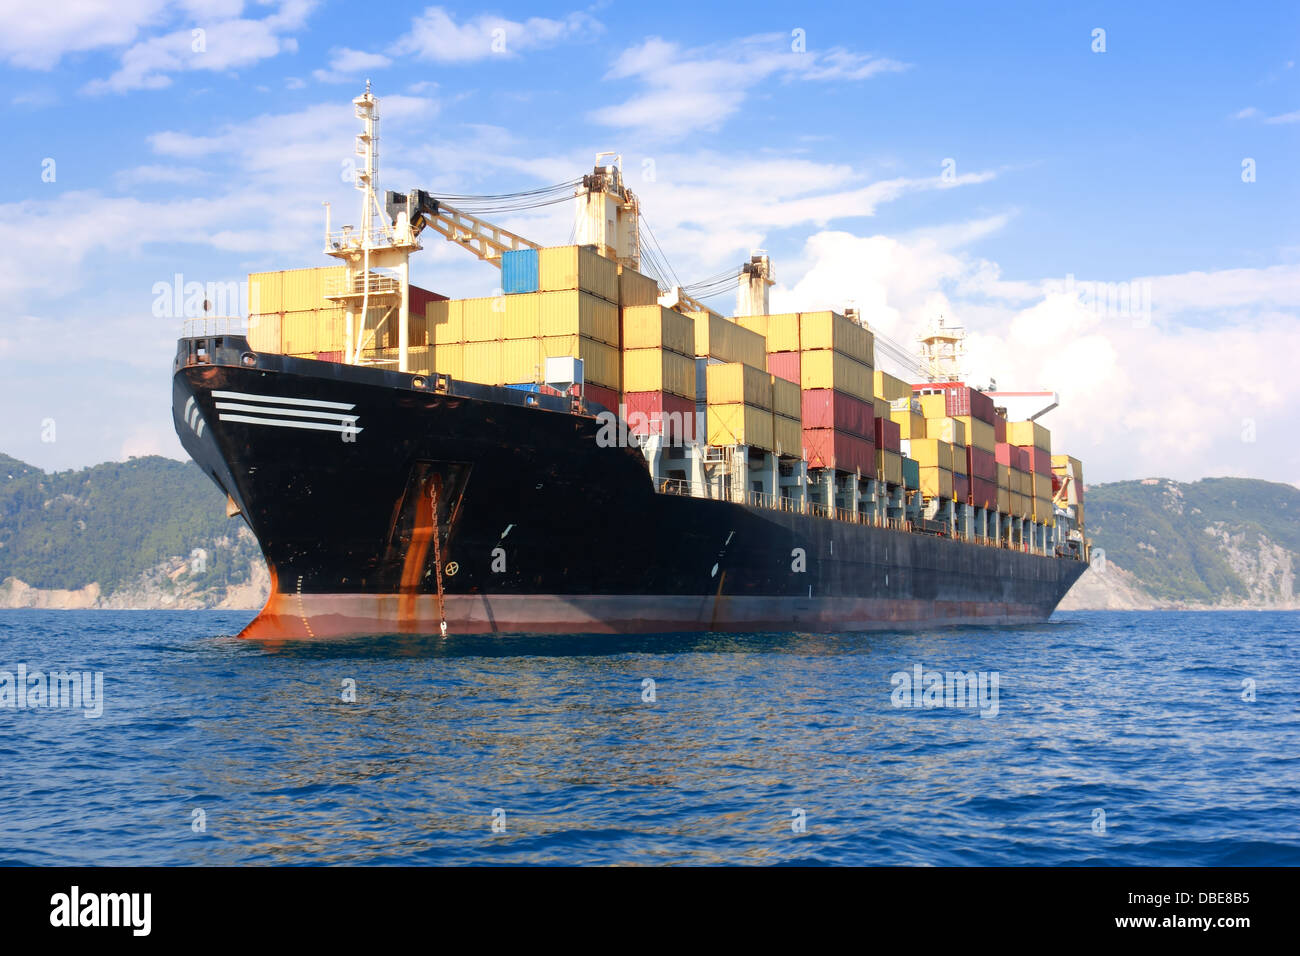 Cargo ship full of containers - Stock Image